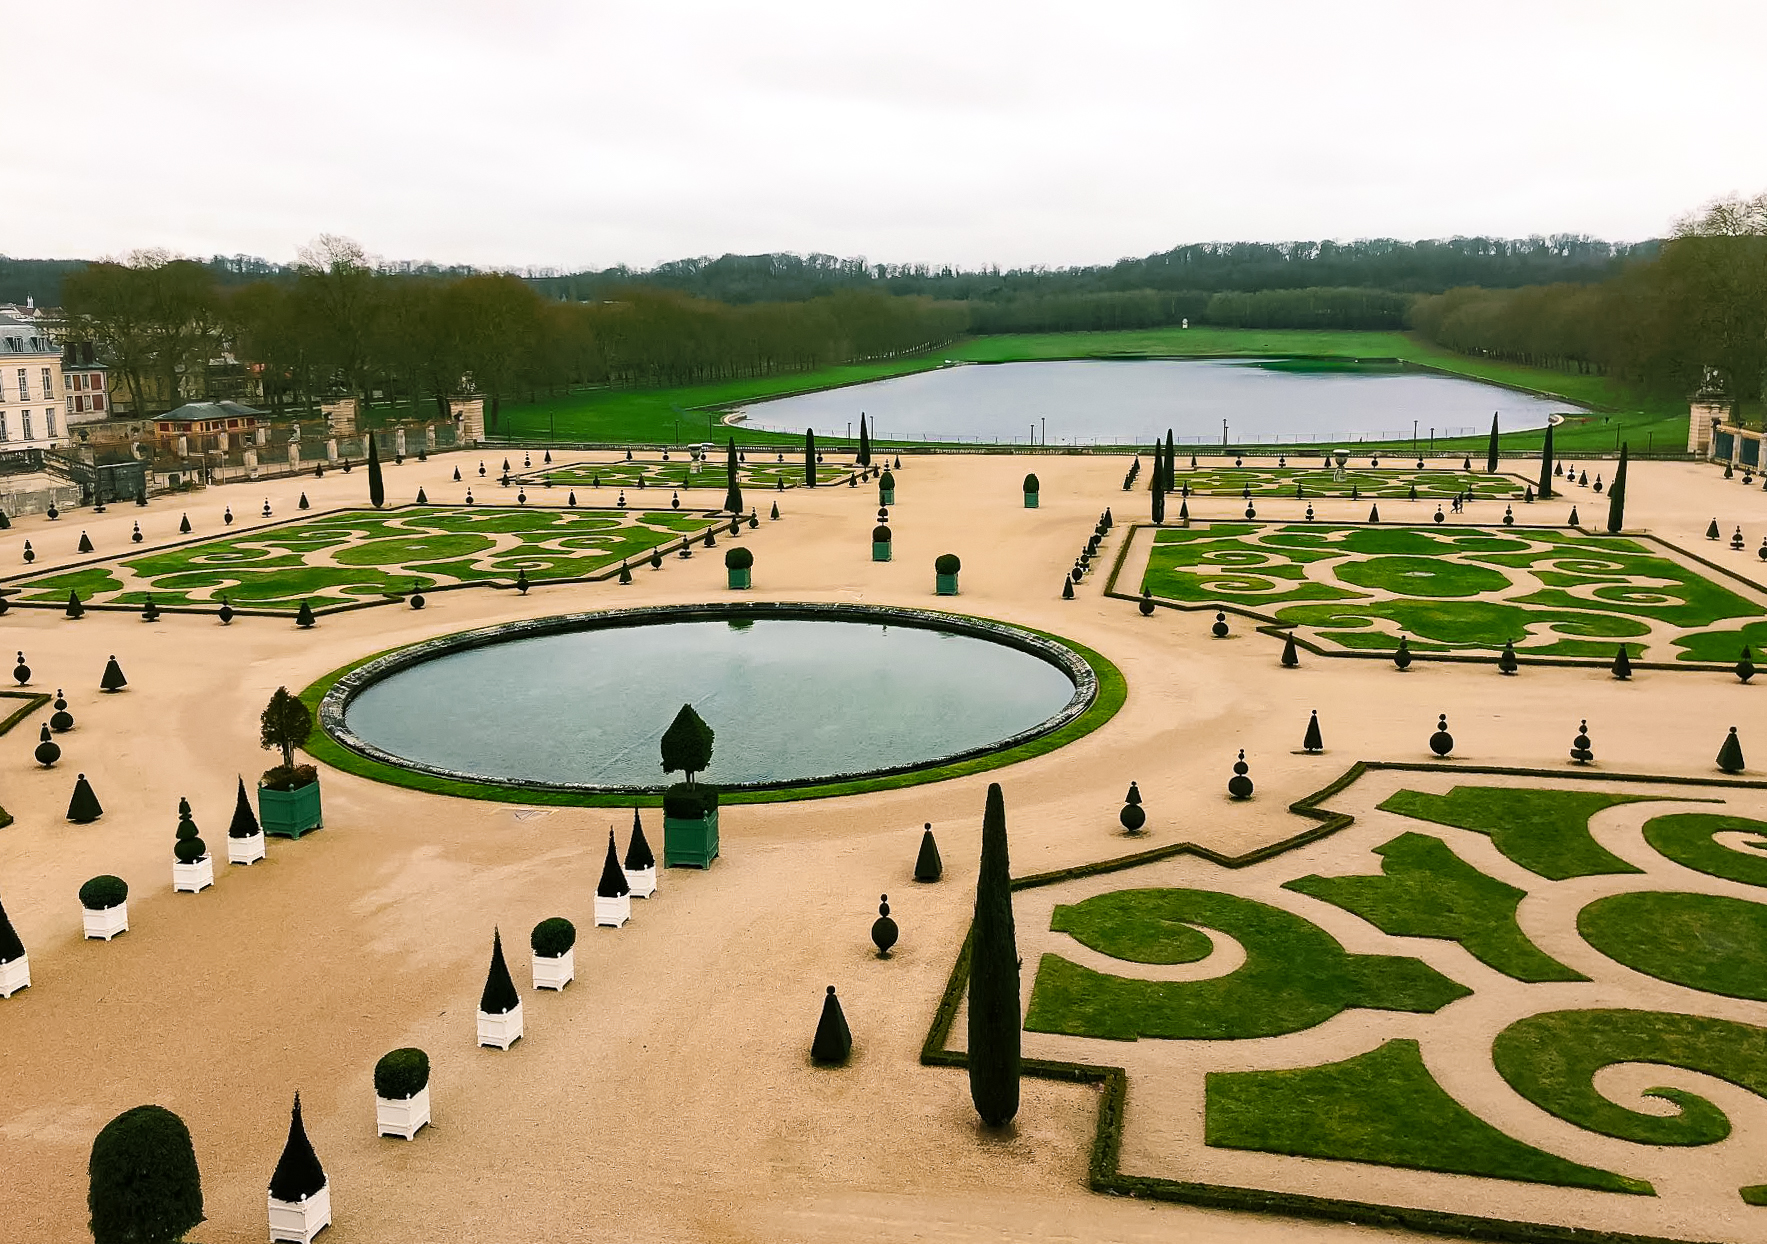 Manicured hedges in the garden of Palace of Versailles